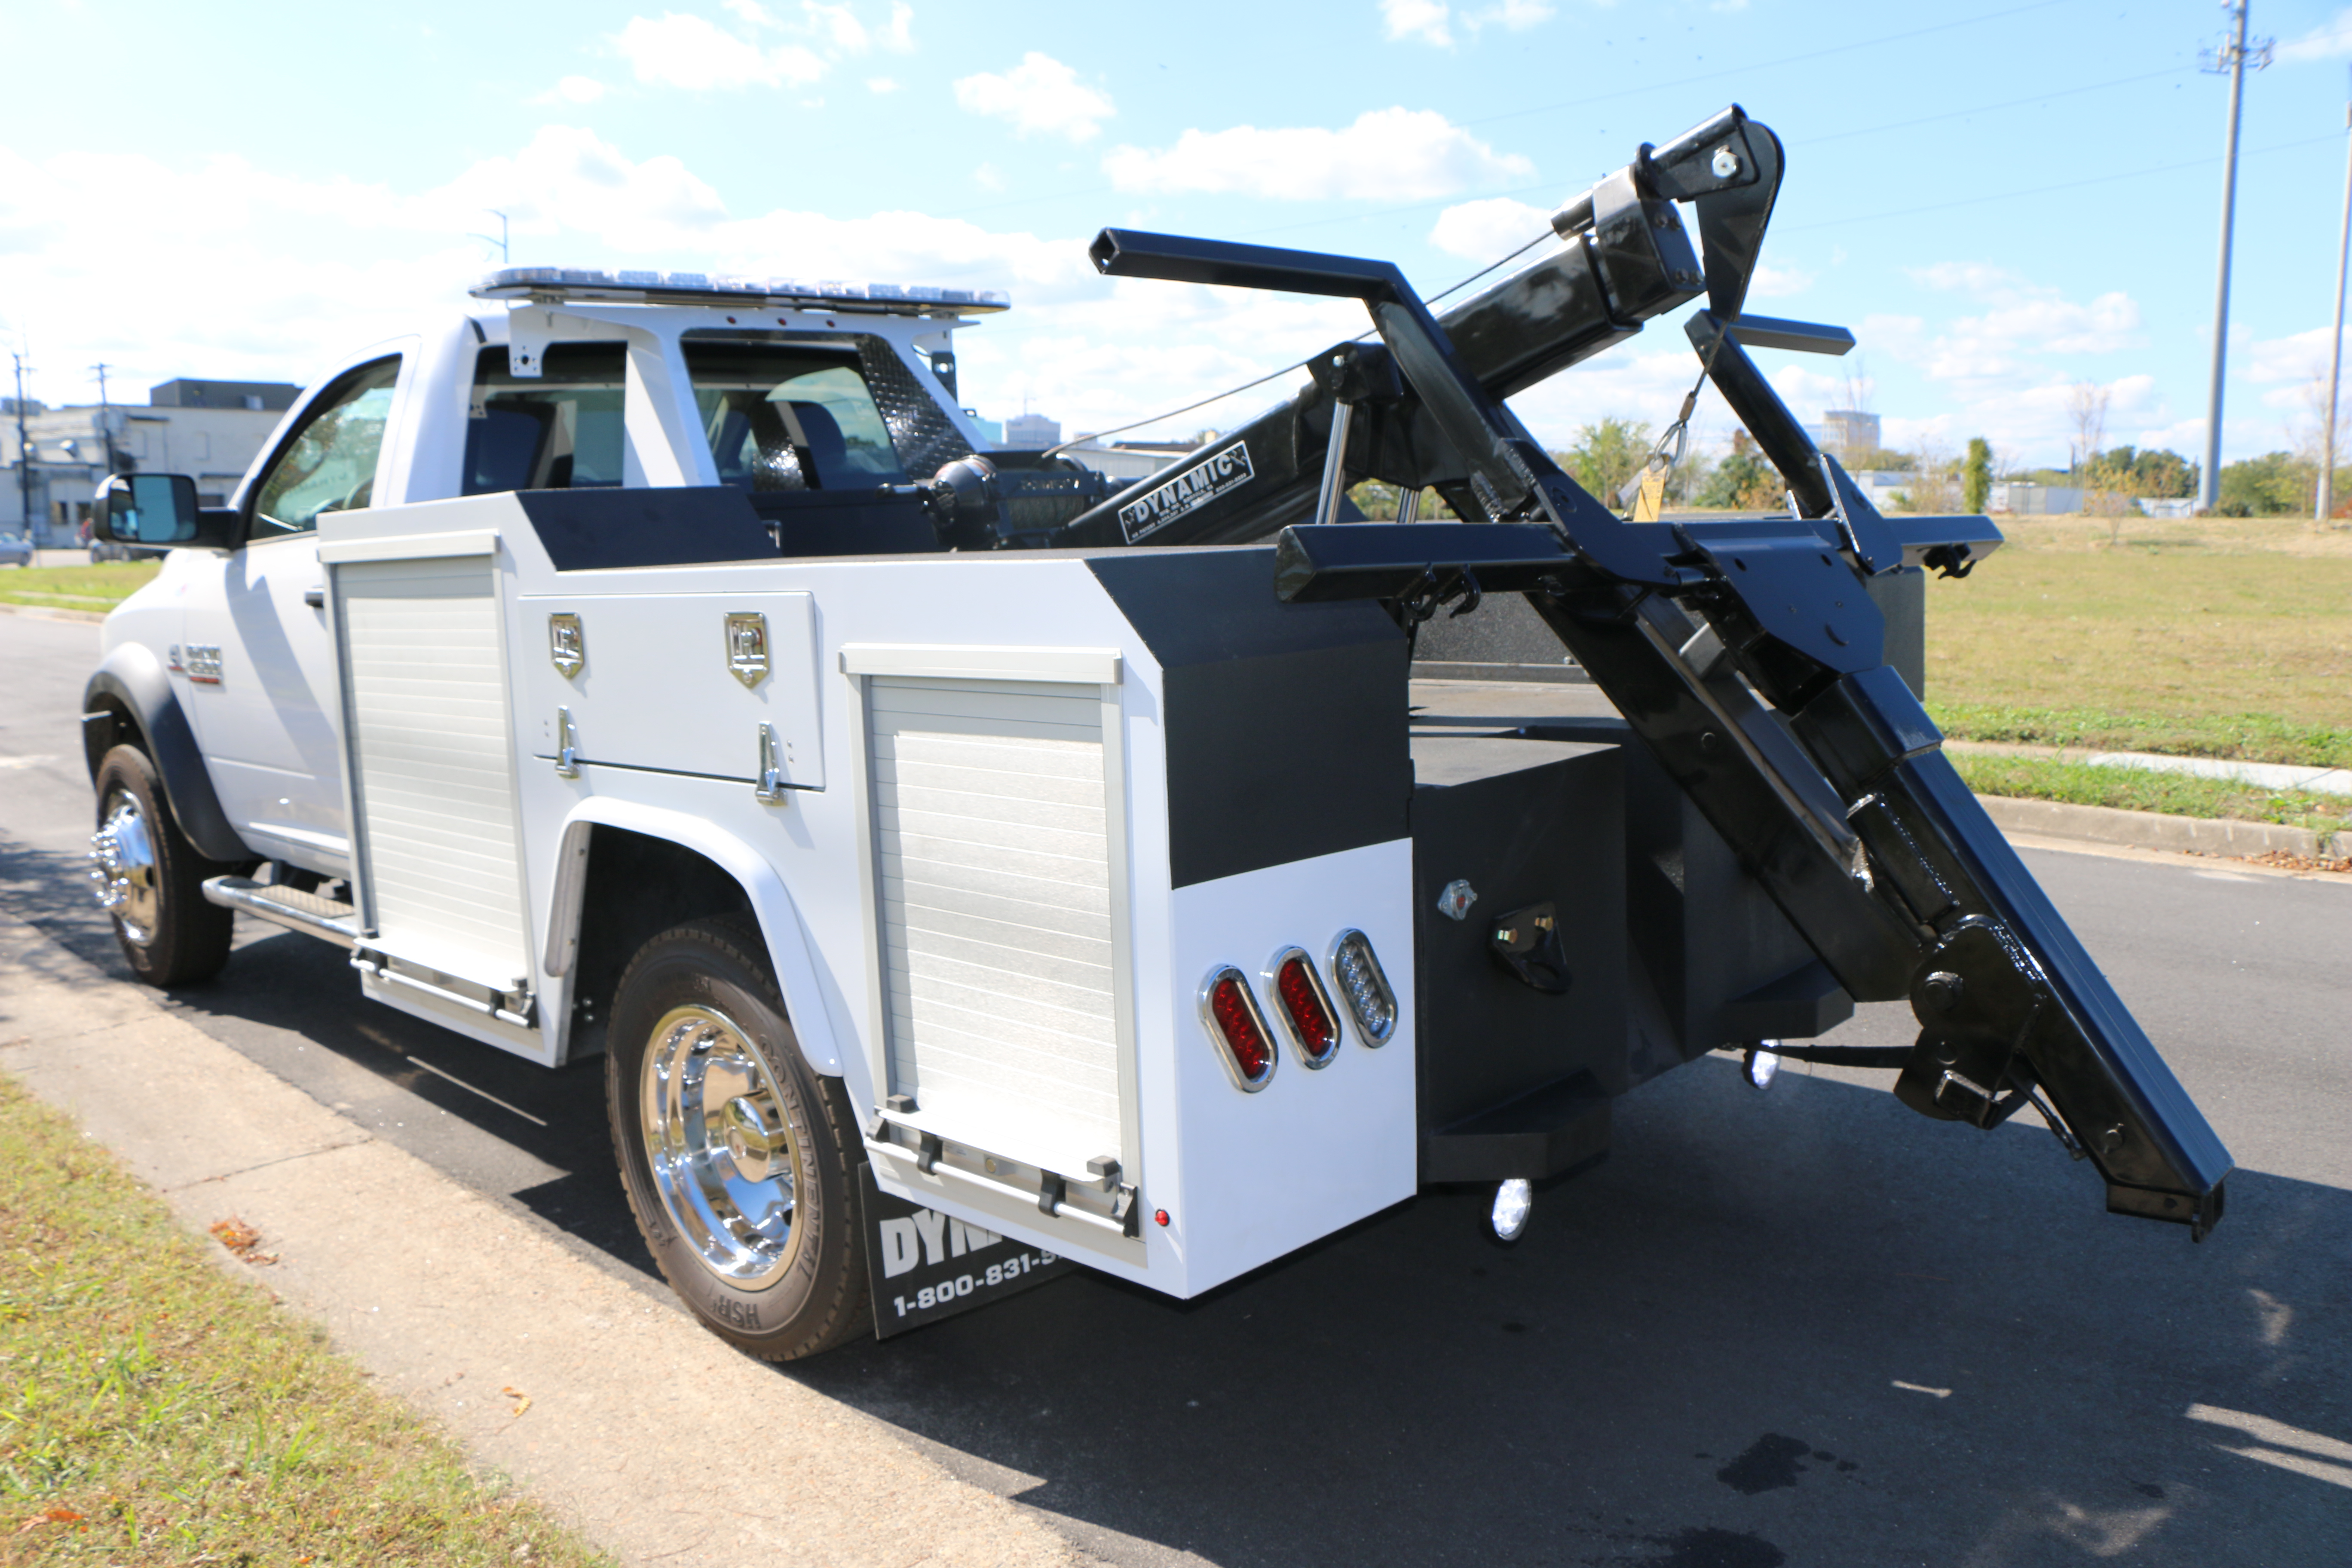 Dynamic Towing Equipment & Manufacturing | Towing Equipment